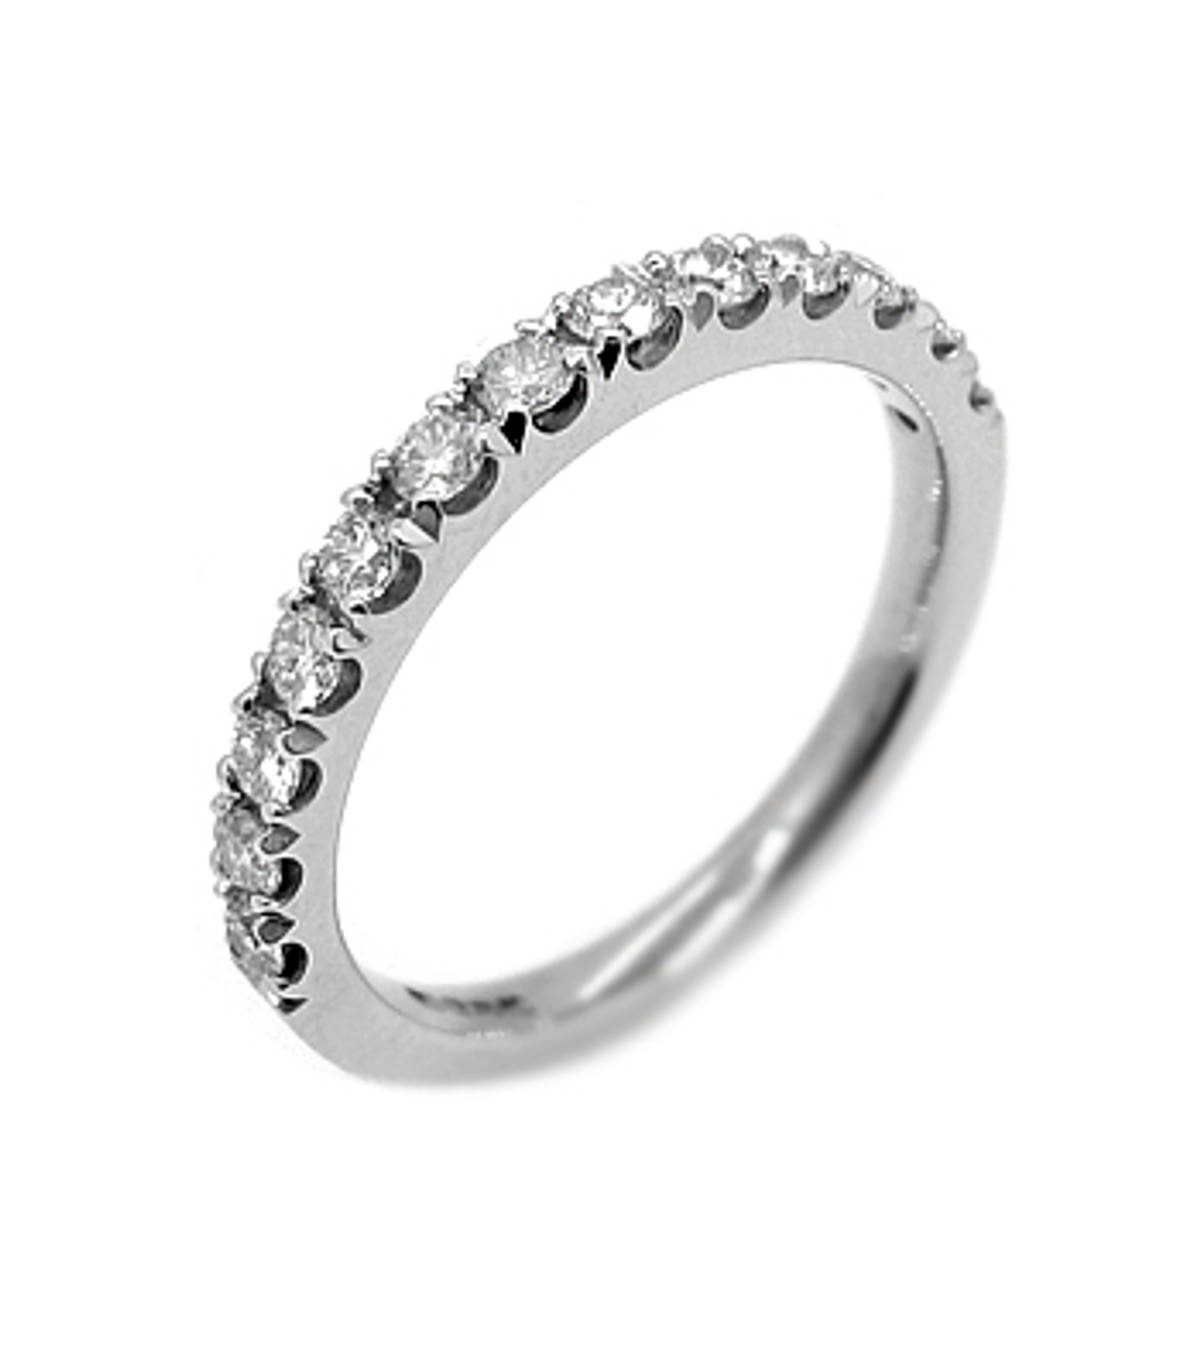 18k white gold 13st brilliant cut diamond claw set eternity ring Carat: total diamond weight 0.43cts Metal: 18k white gold